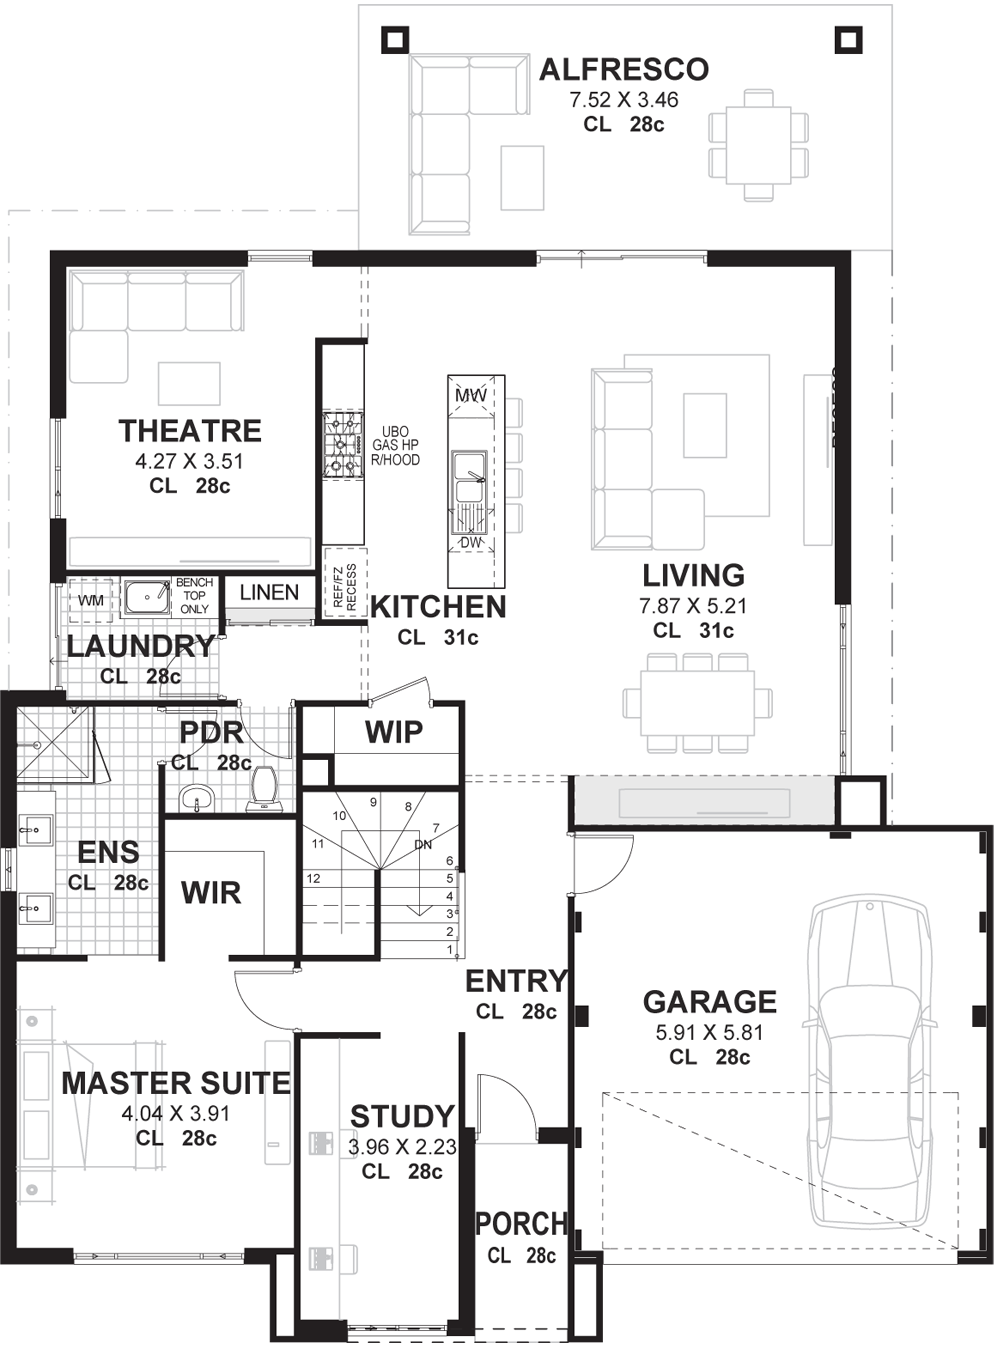 4 Bedroom House Plans & Home Designs Perth | Vision One ...